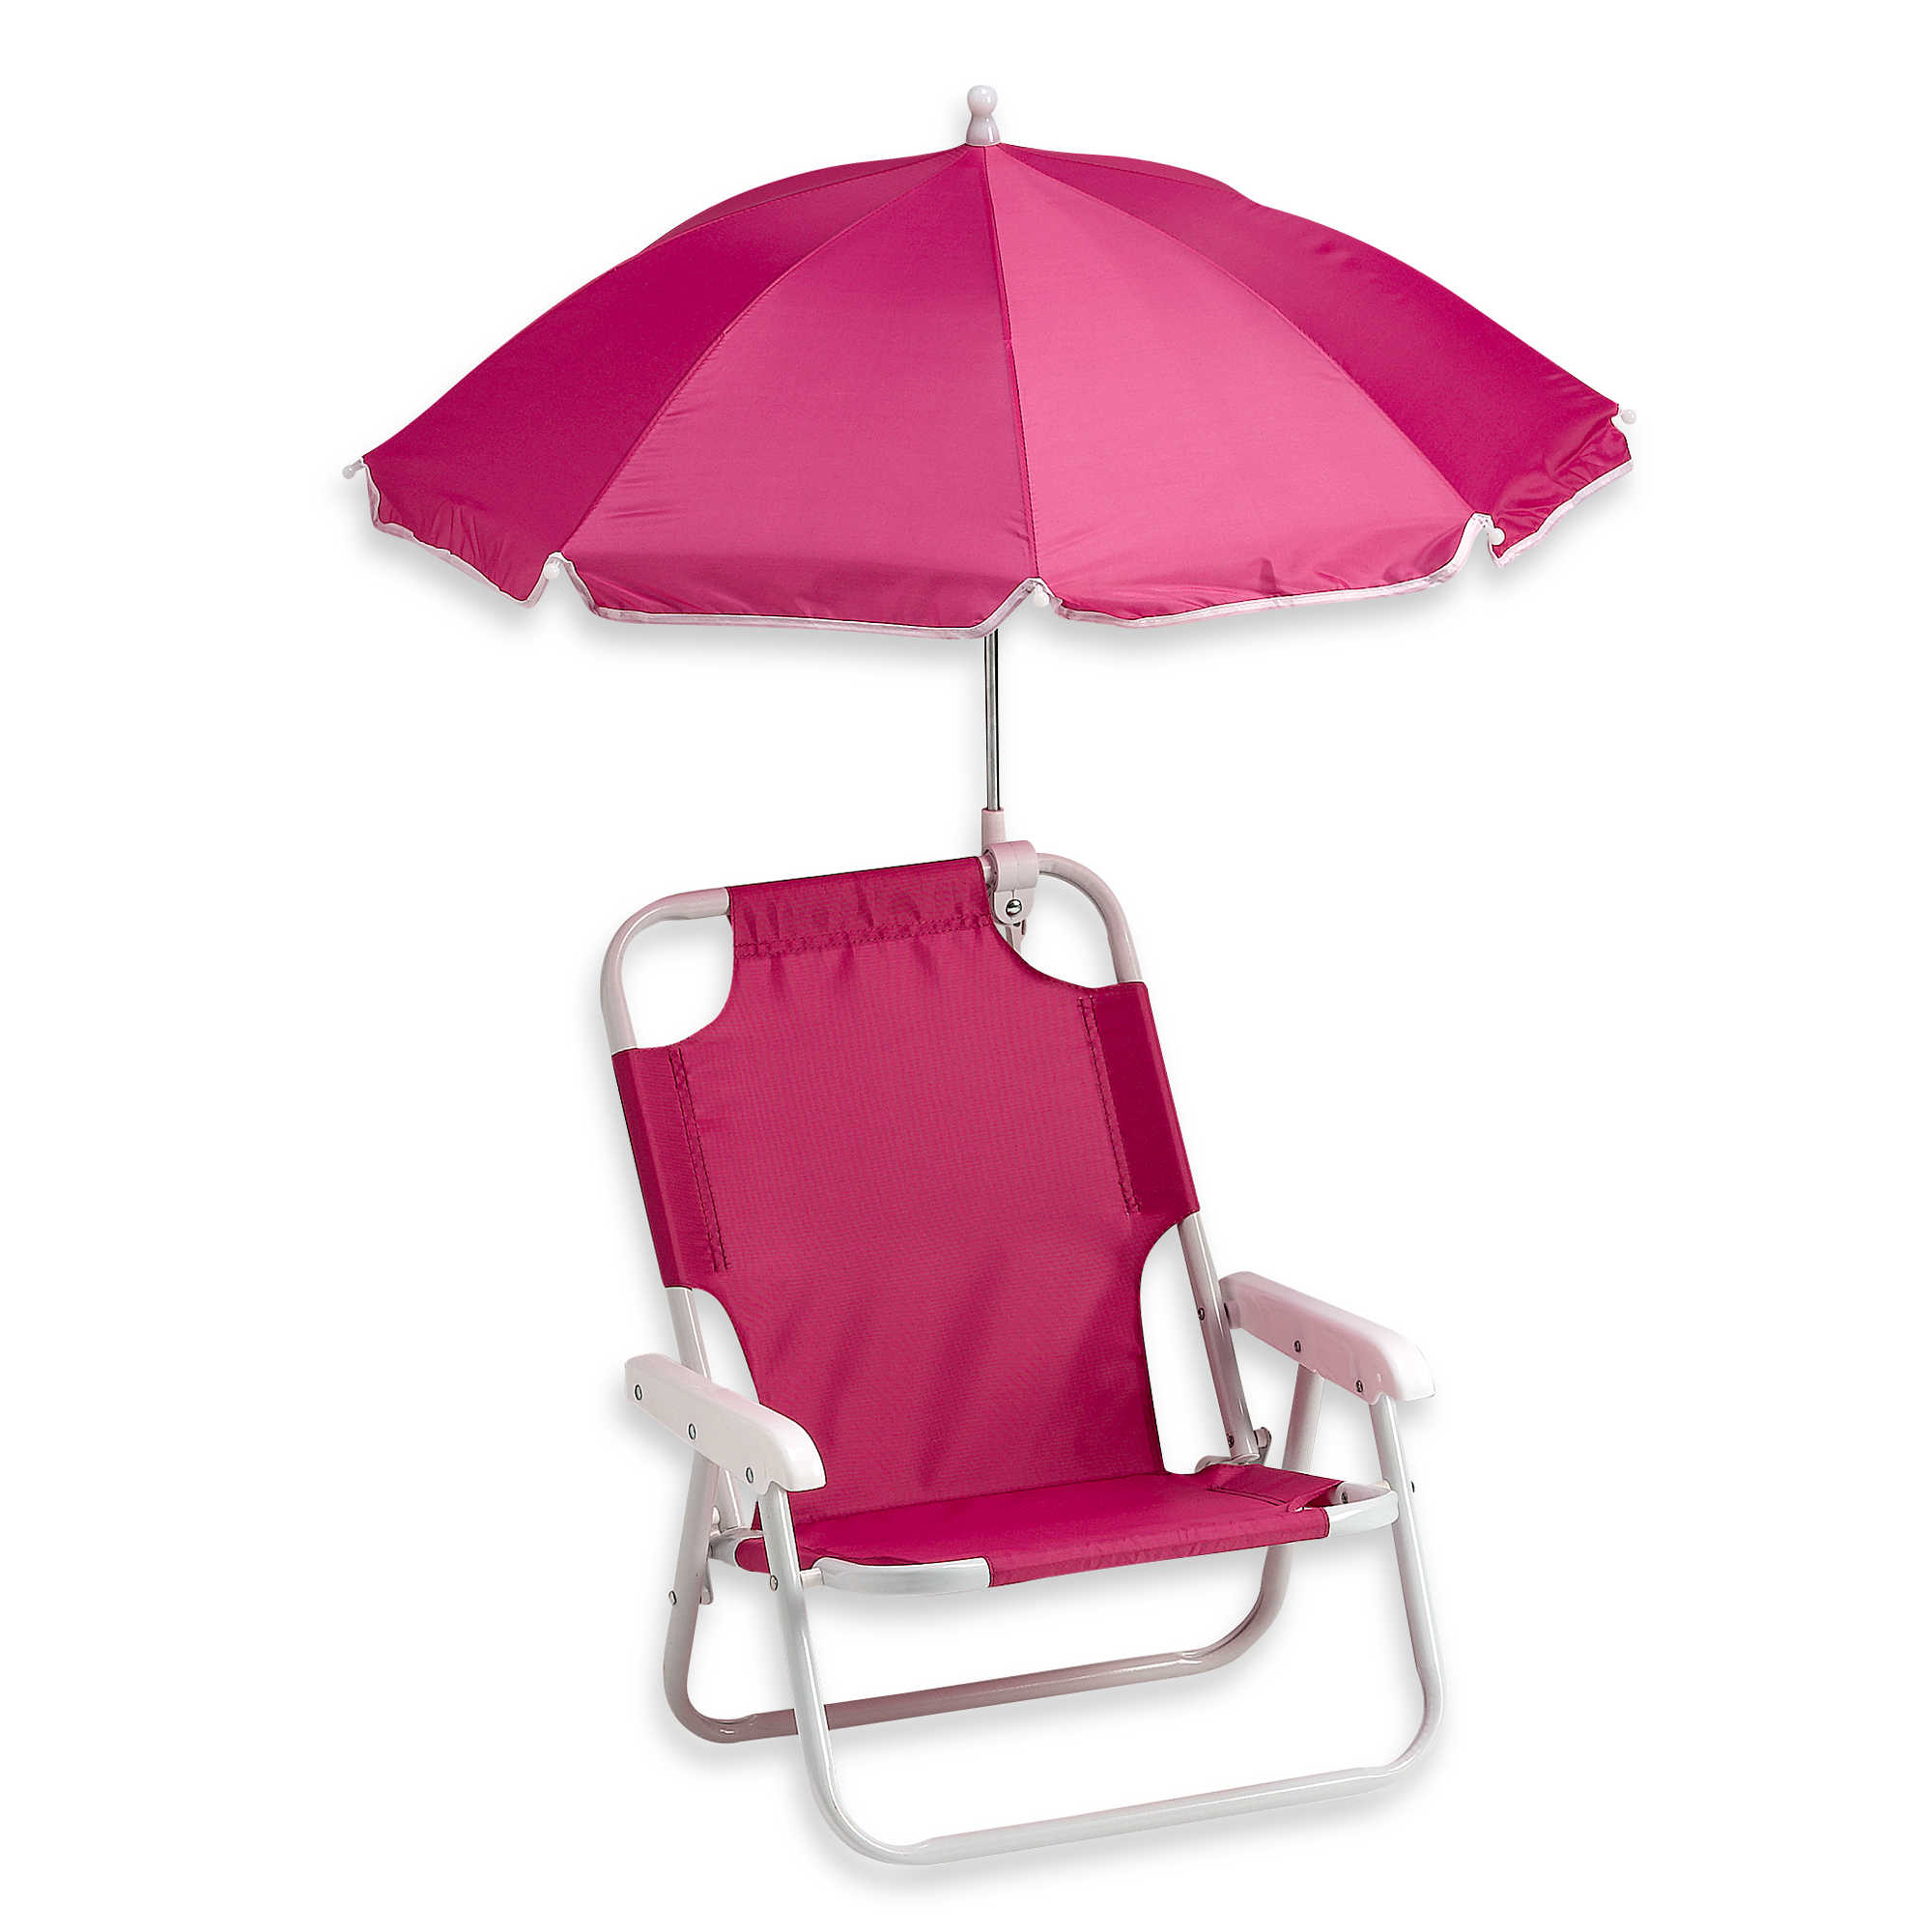 beach umbrella for chair verte ergonomic #22011 folding with purple pumpkin gifts